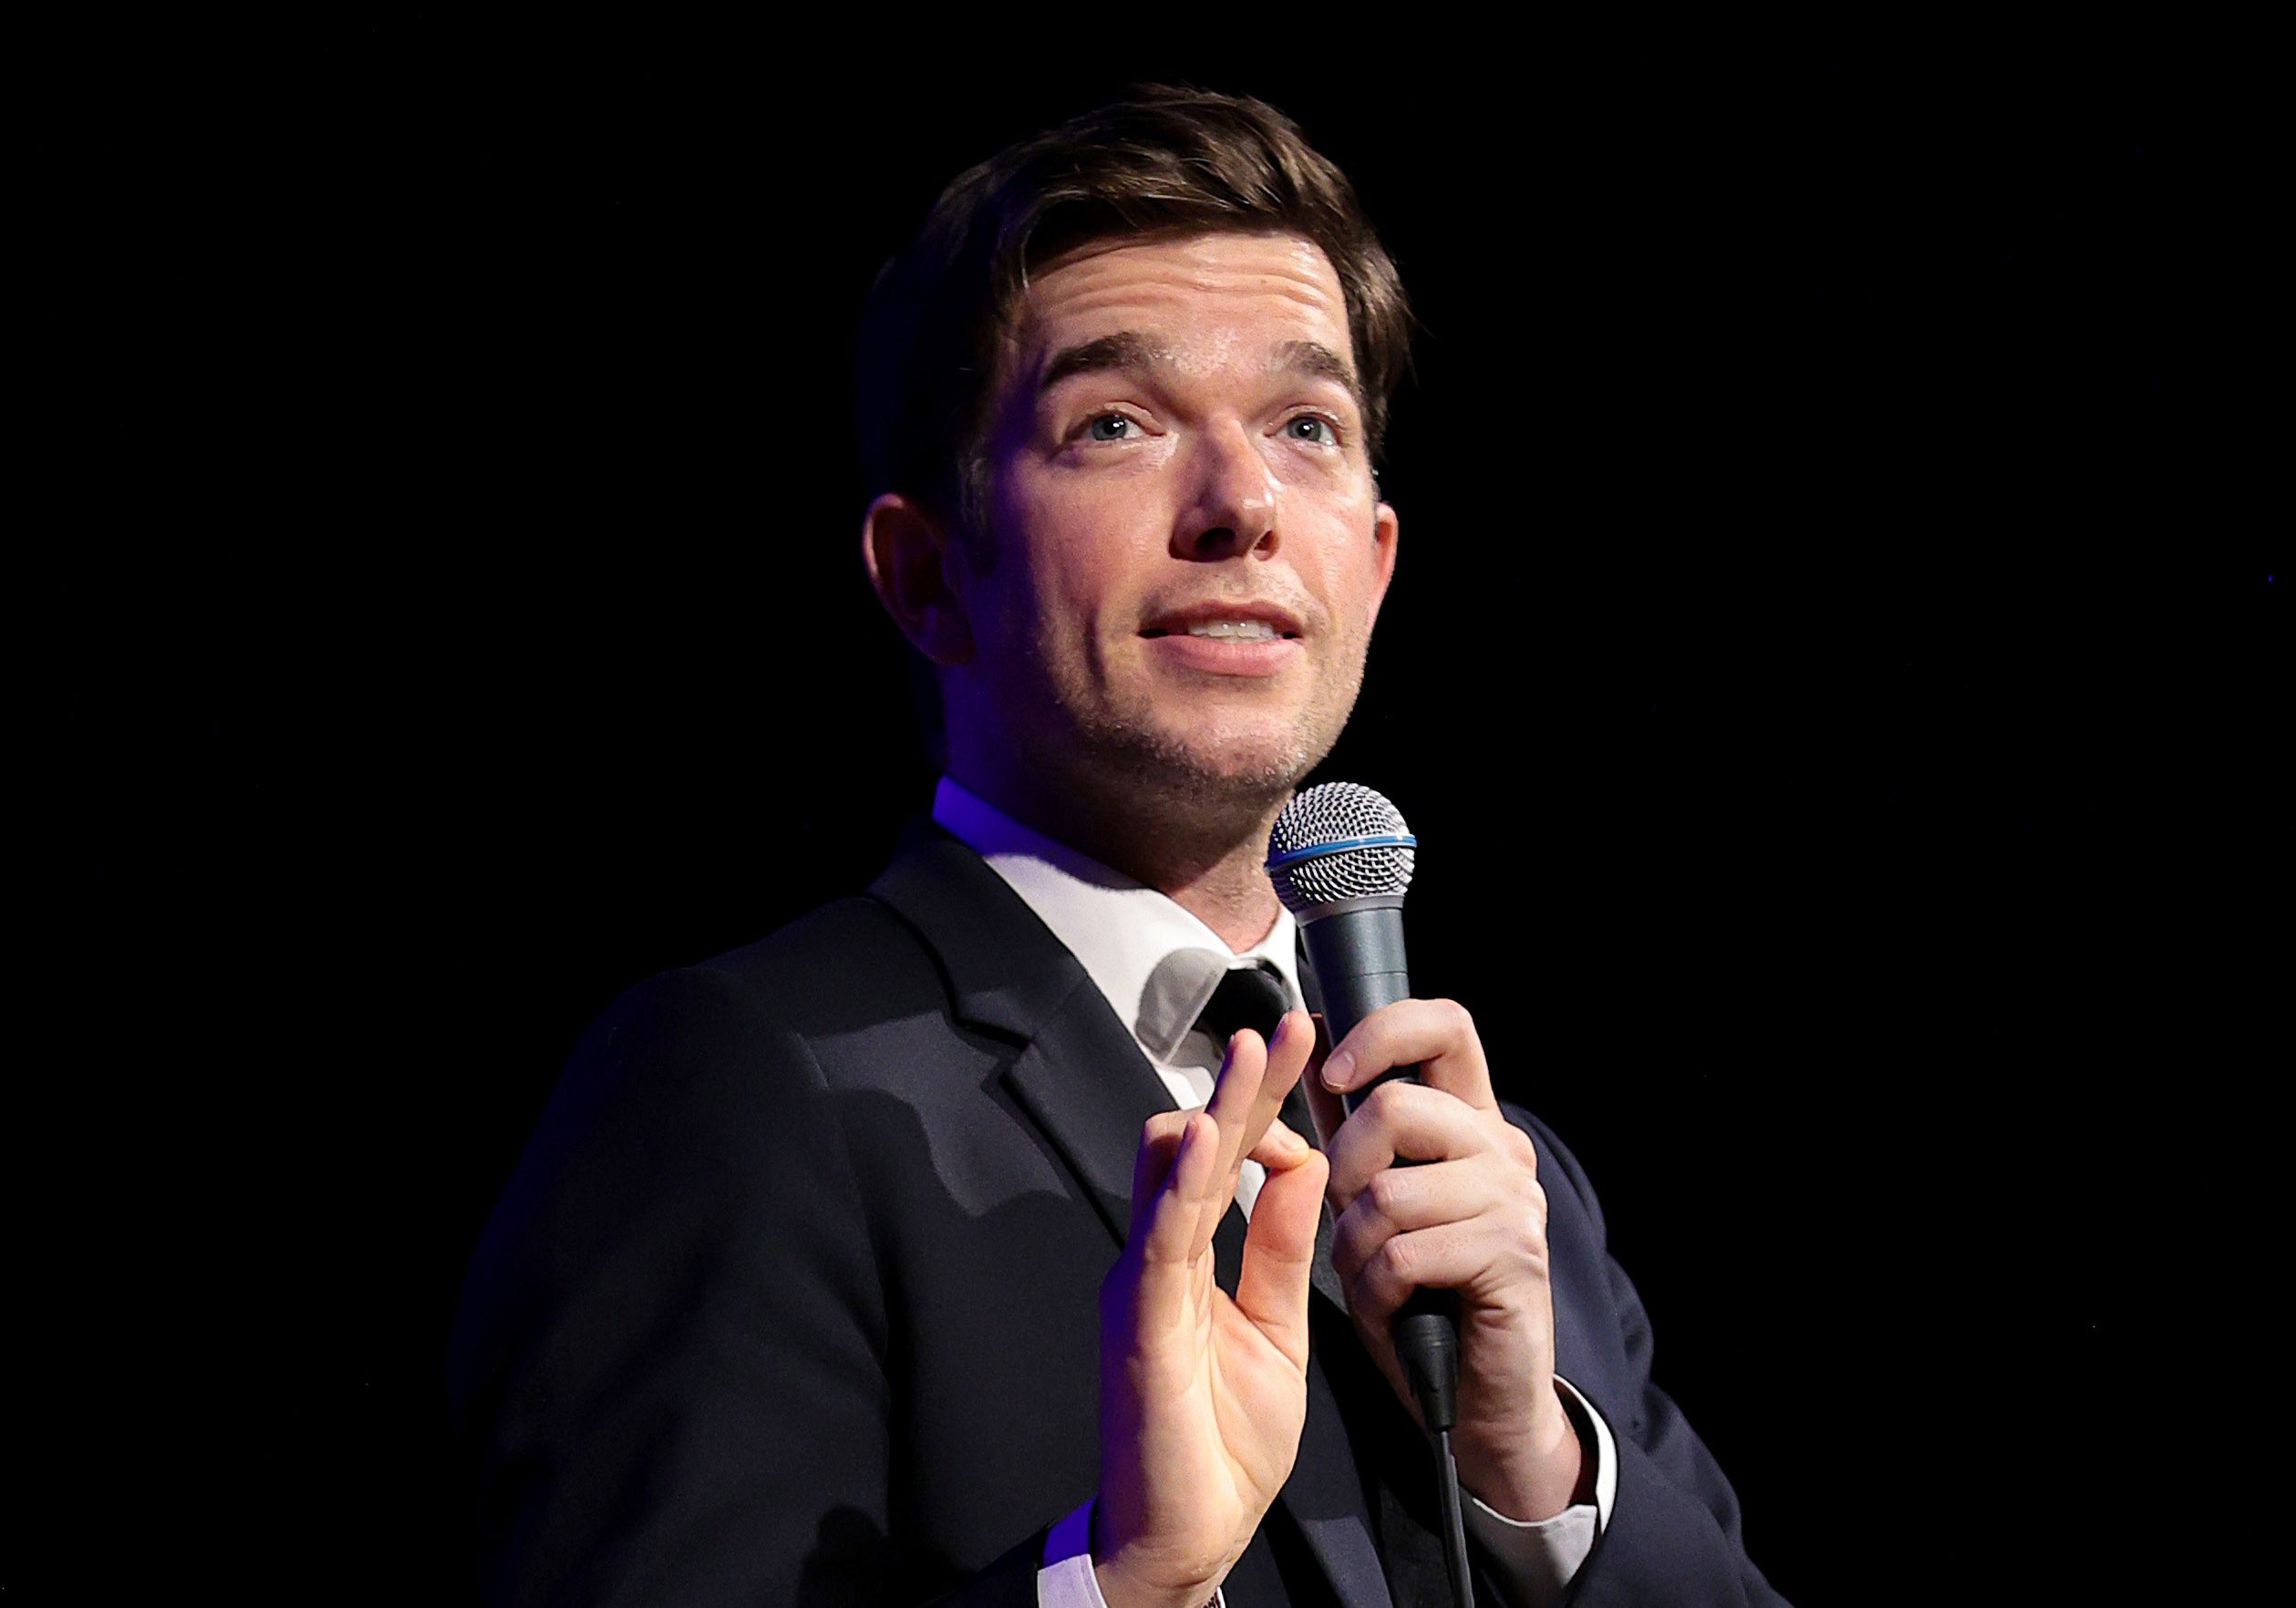 John Mulaney performing stand-up in a gray suit